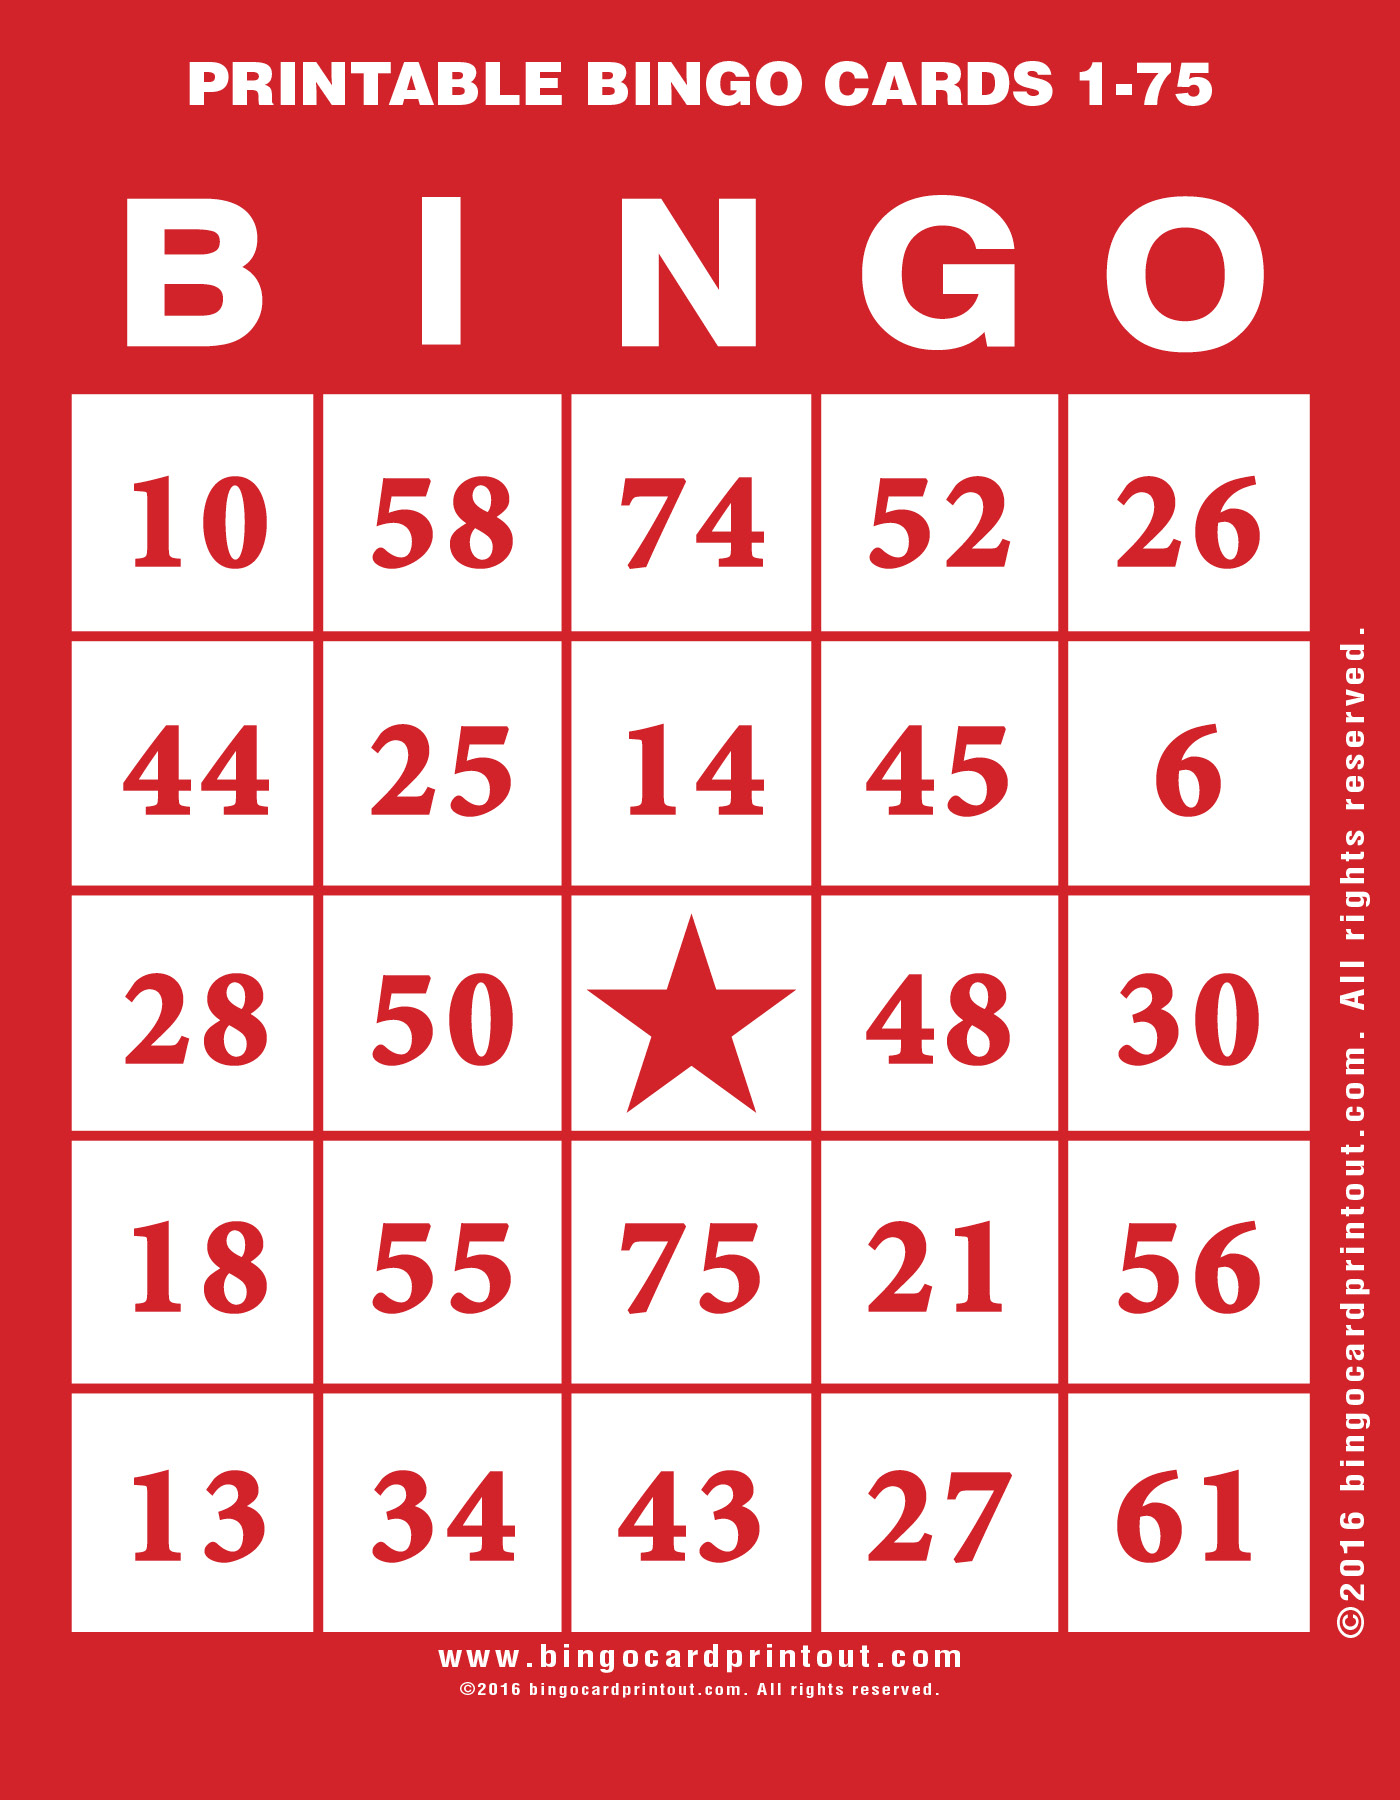 picture about Printable Bingo Cards 1-75 called Printable Bingo Playing cards 1-75 -